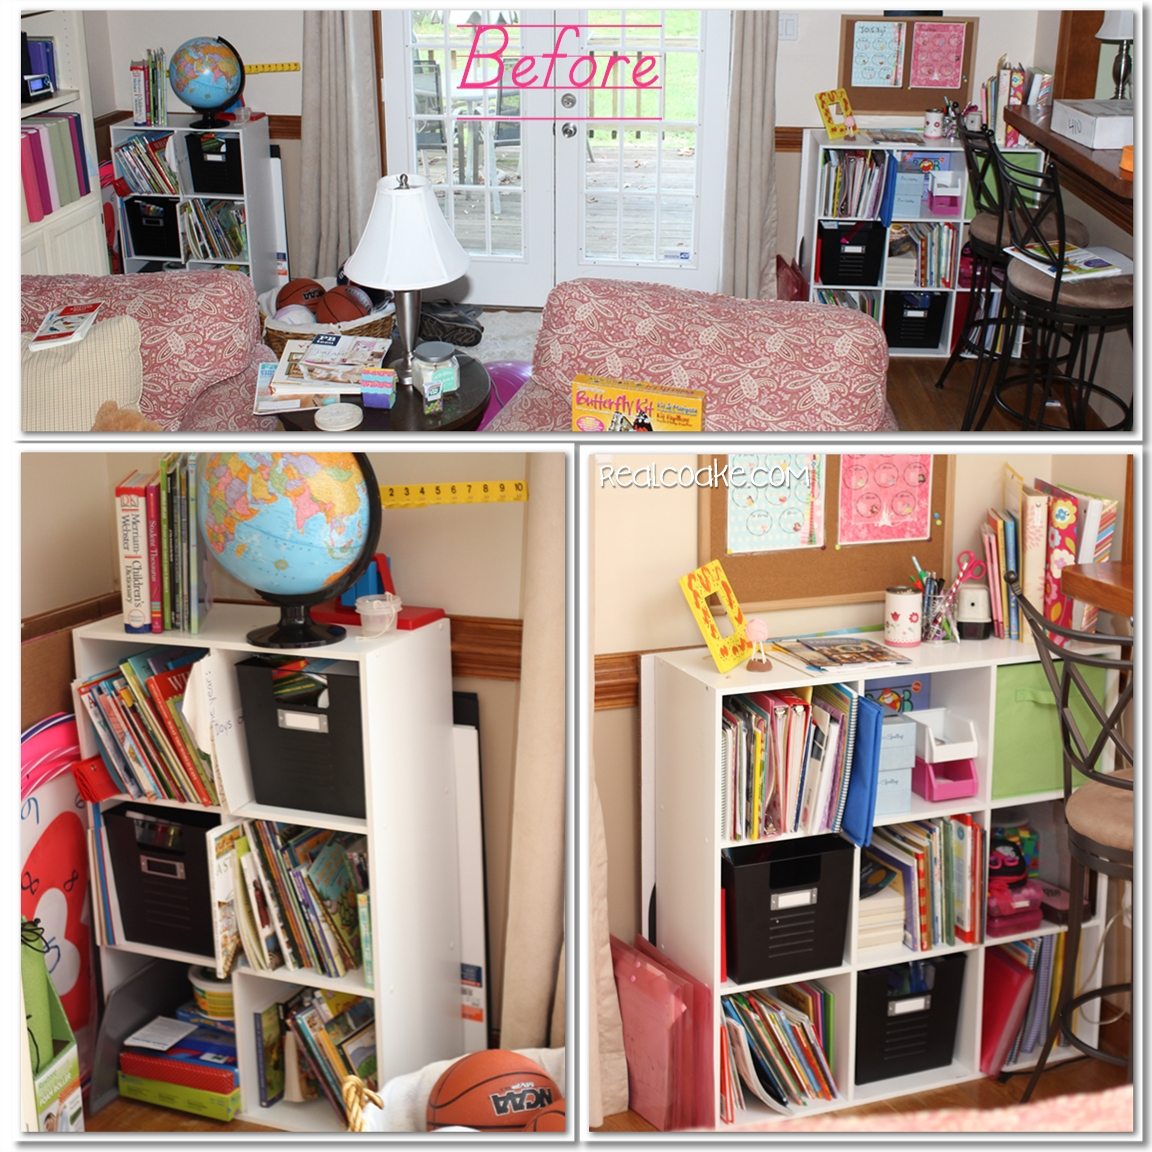 Homeschool Organization Ideas For Organizing All The Books And Supplies In  Shelves In The Living Room